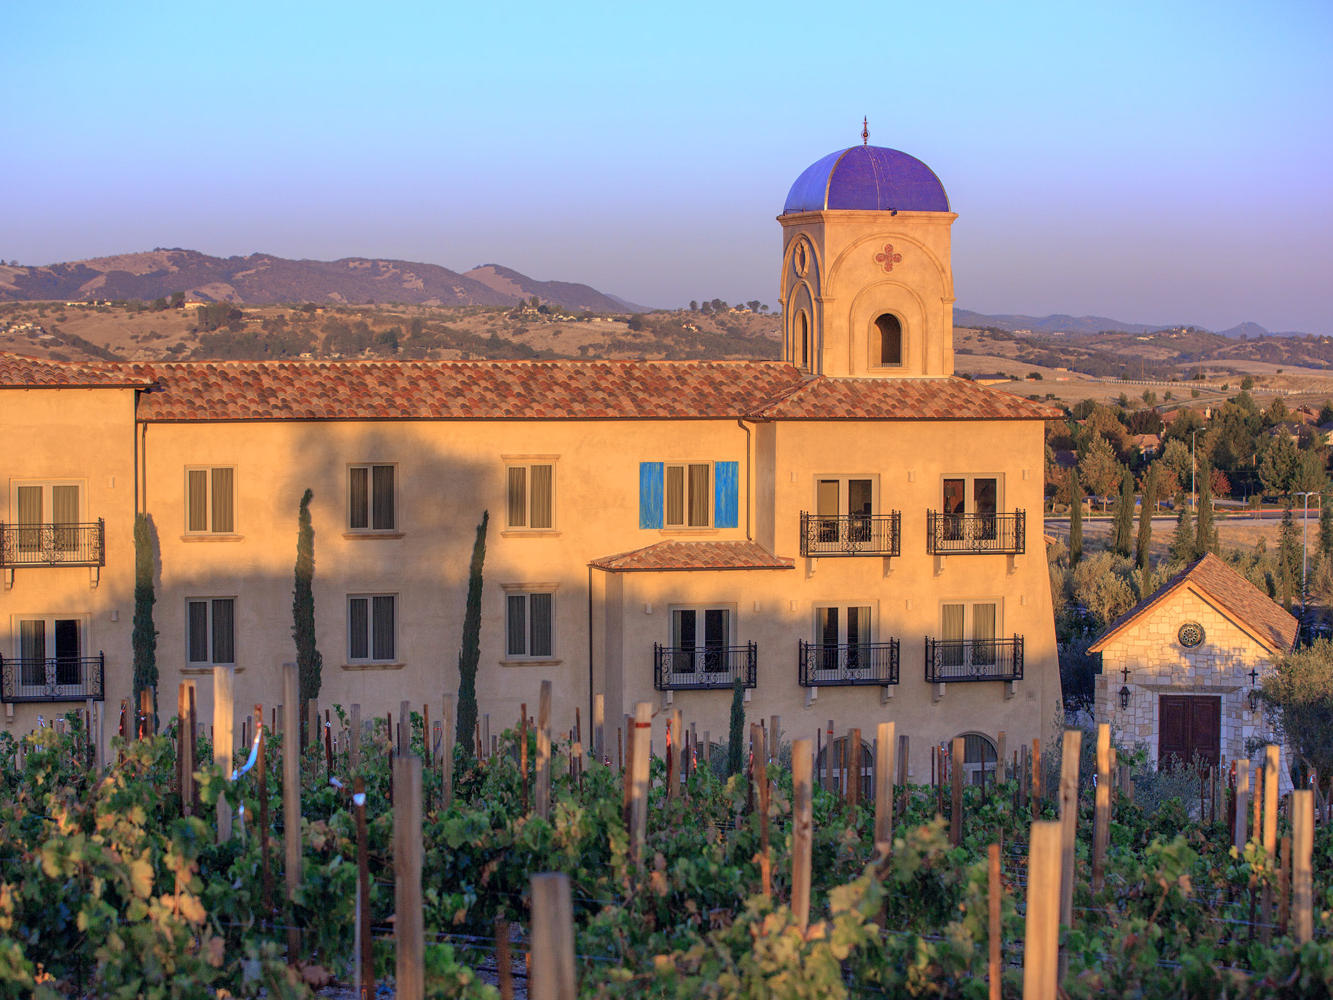 A view of the exterior of the resort looking through the vineyard at sunset.